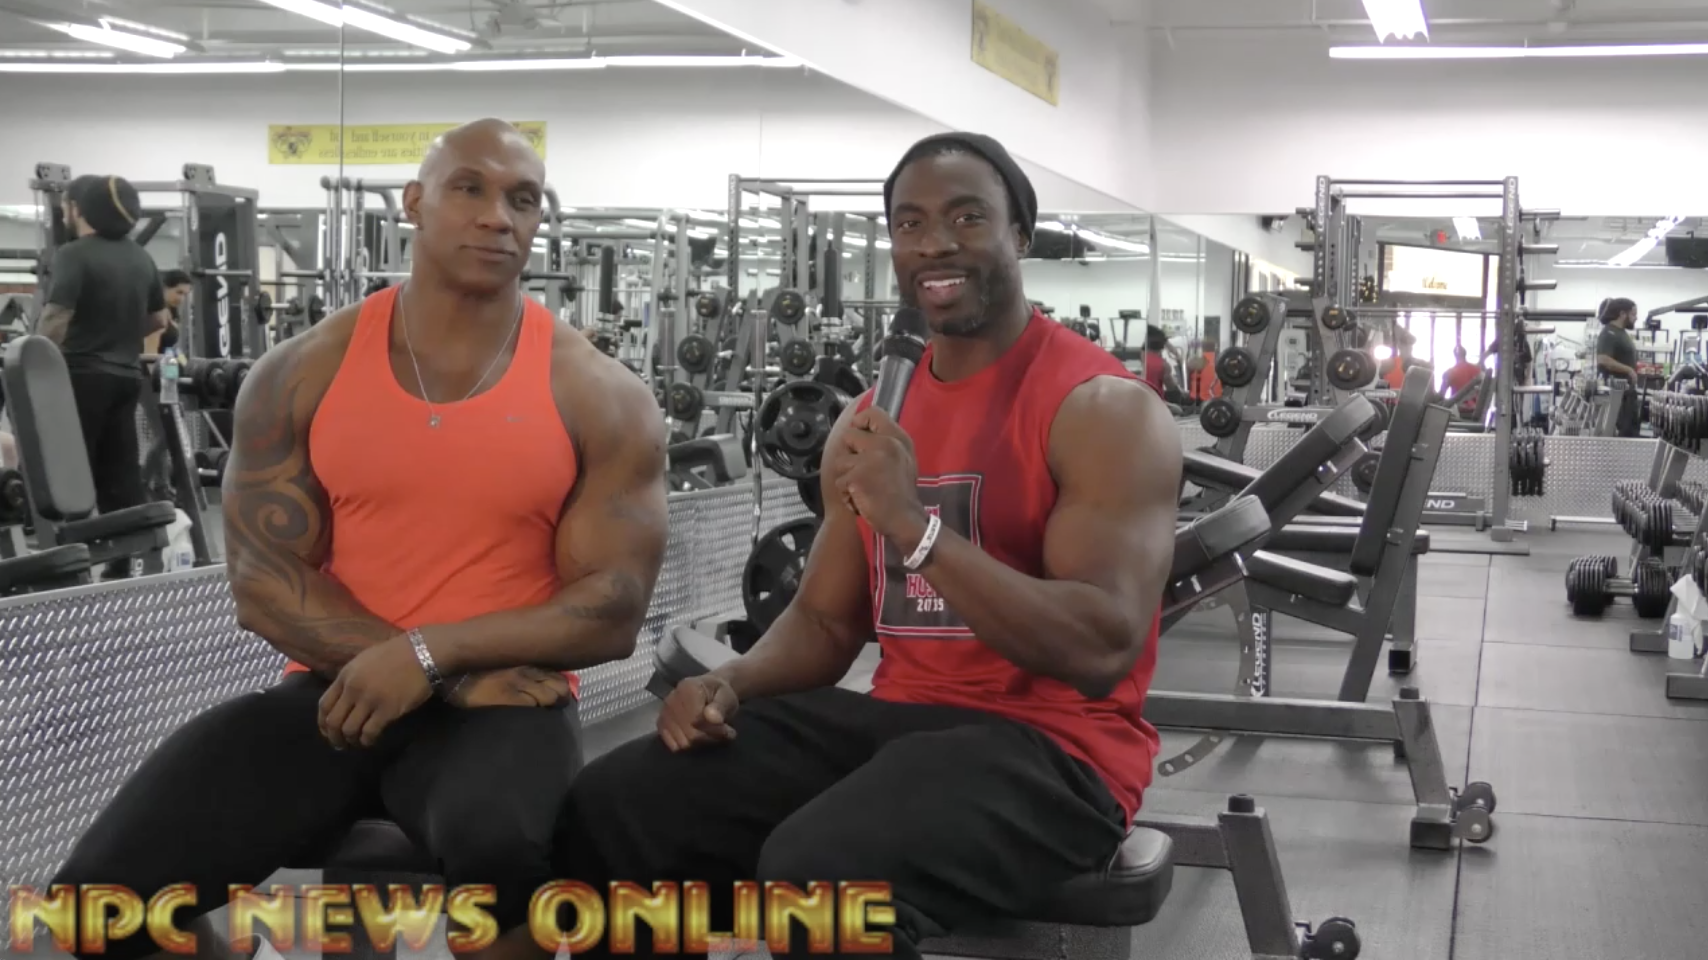 IFBB Pro Ferlan Bailey shares his story of how he became a bodybuilder with fellow IFBB Pro Travales Blount